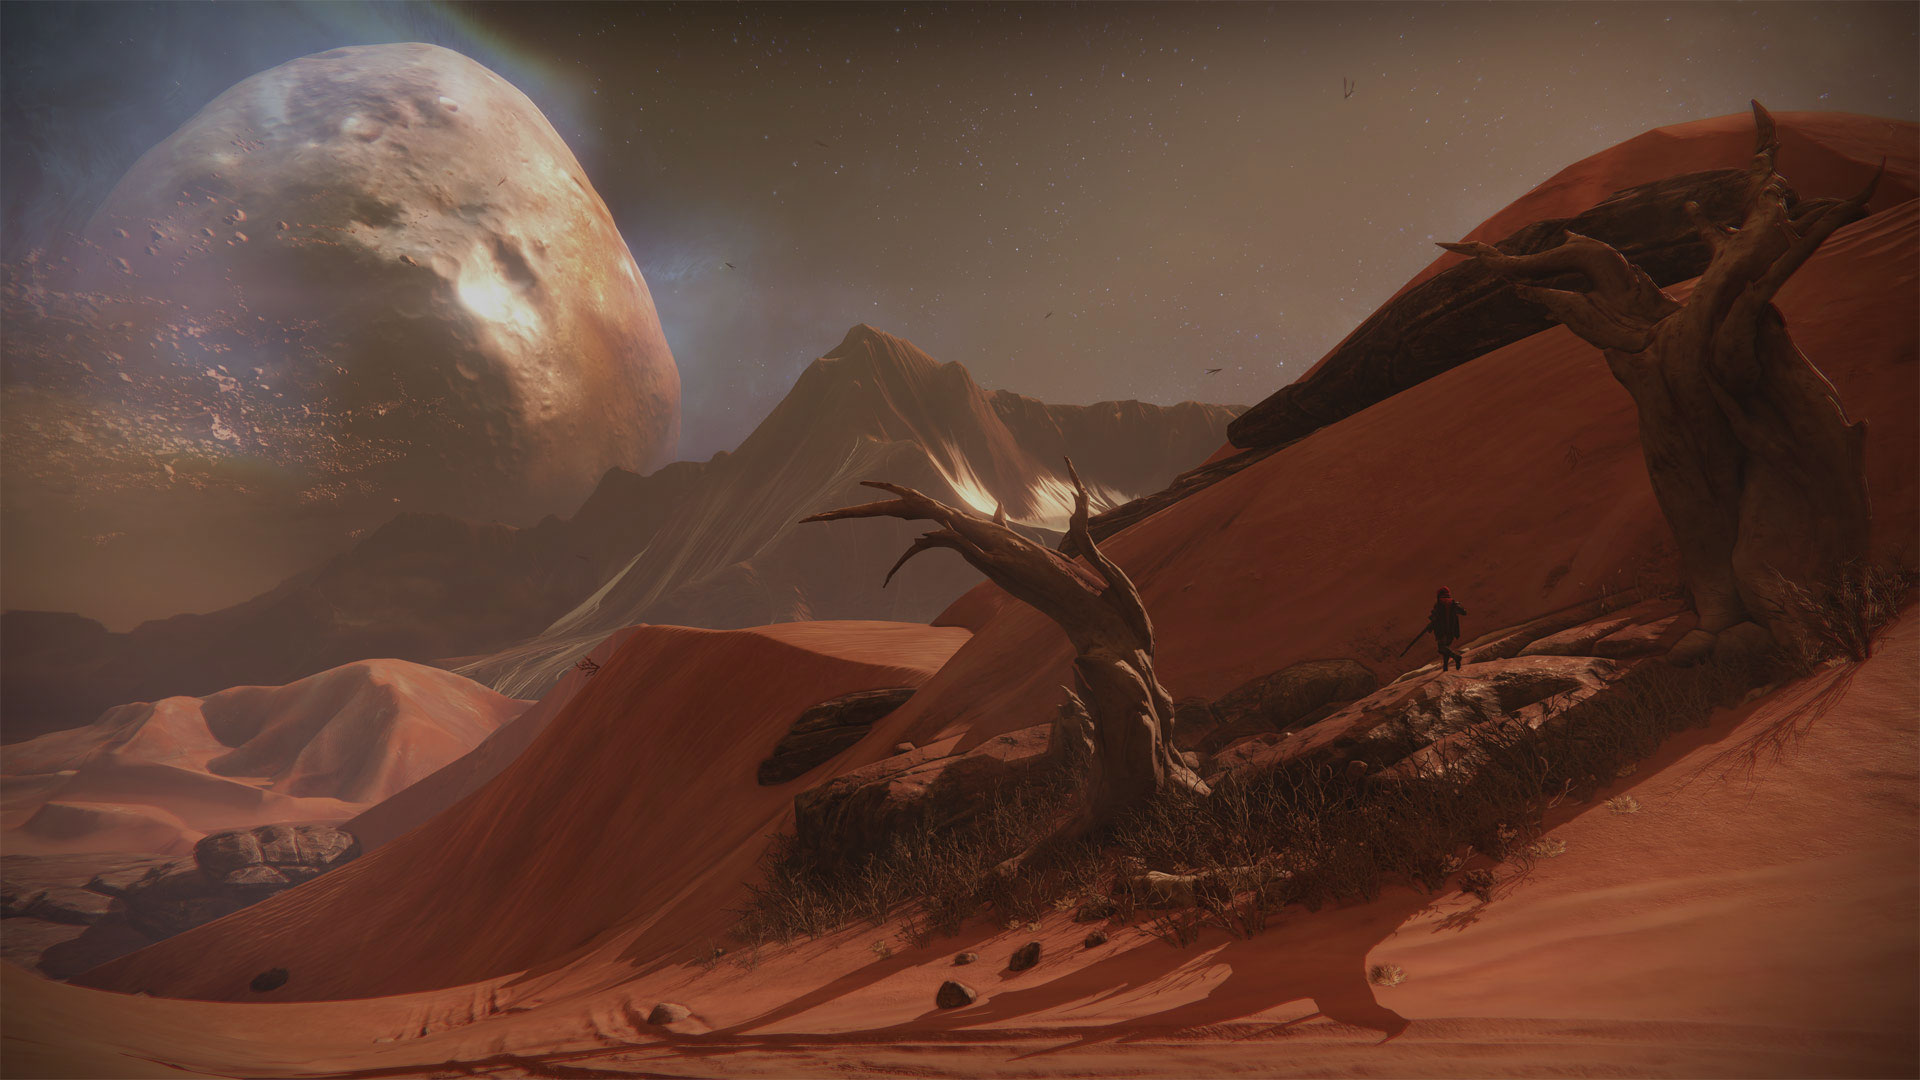 Destiny website revamp offers more on enemies, classes, locations